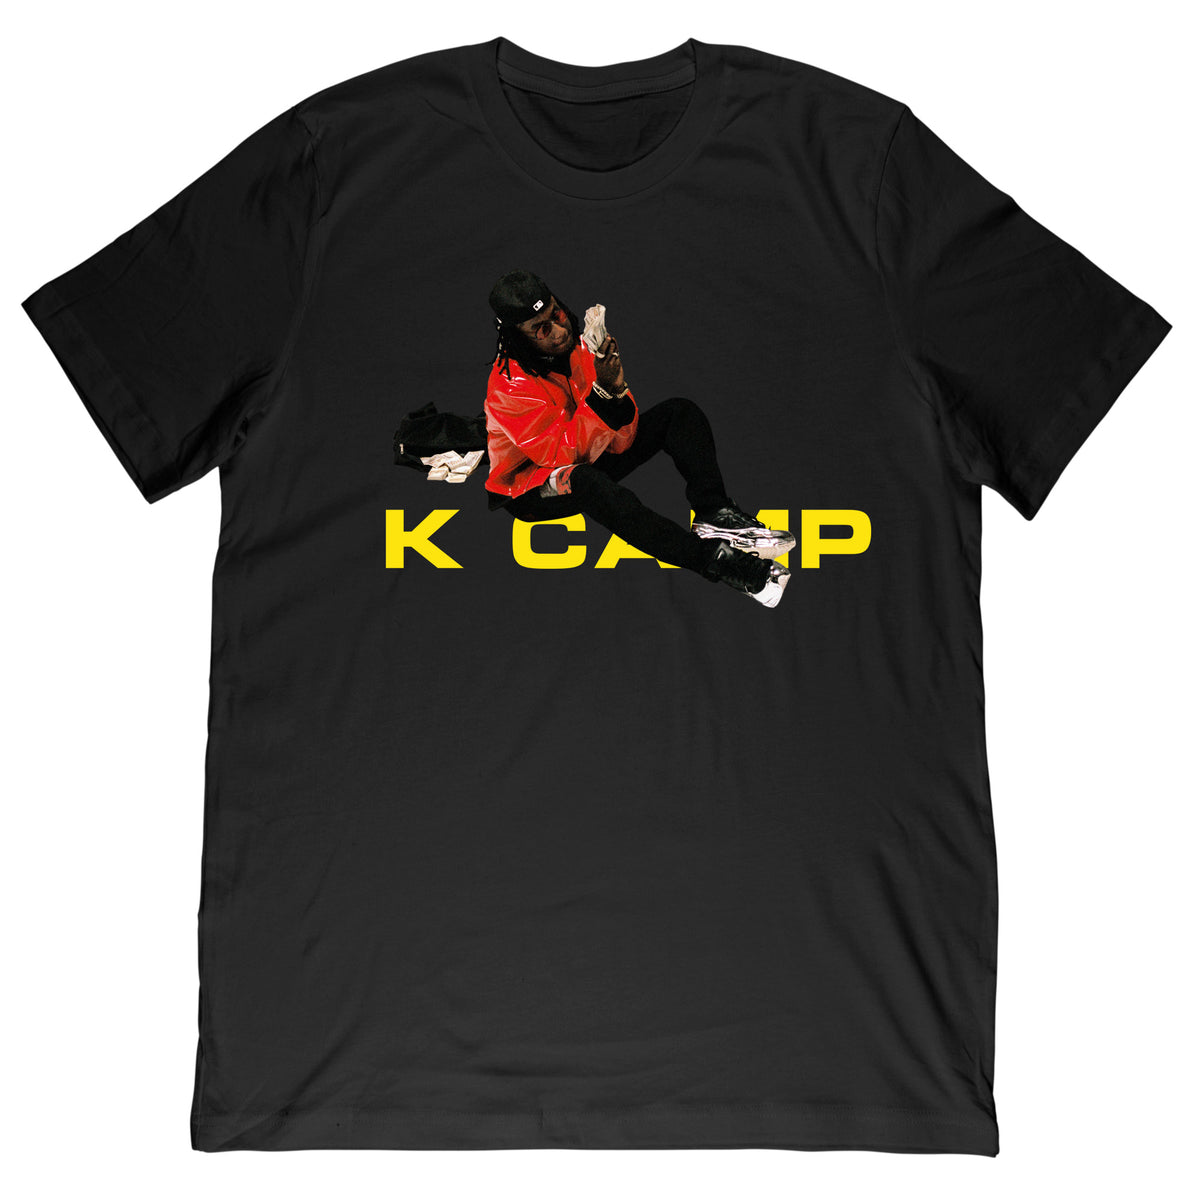 K Camp Tee + Wayy 2 Kritical Digital Album